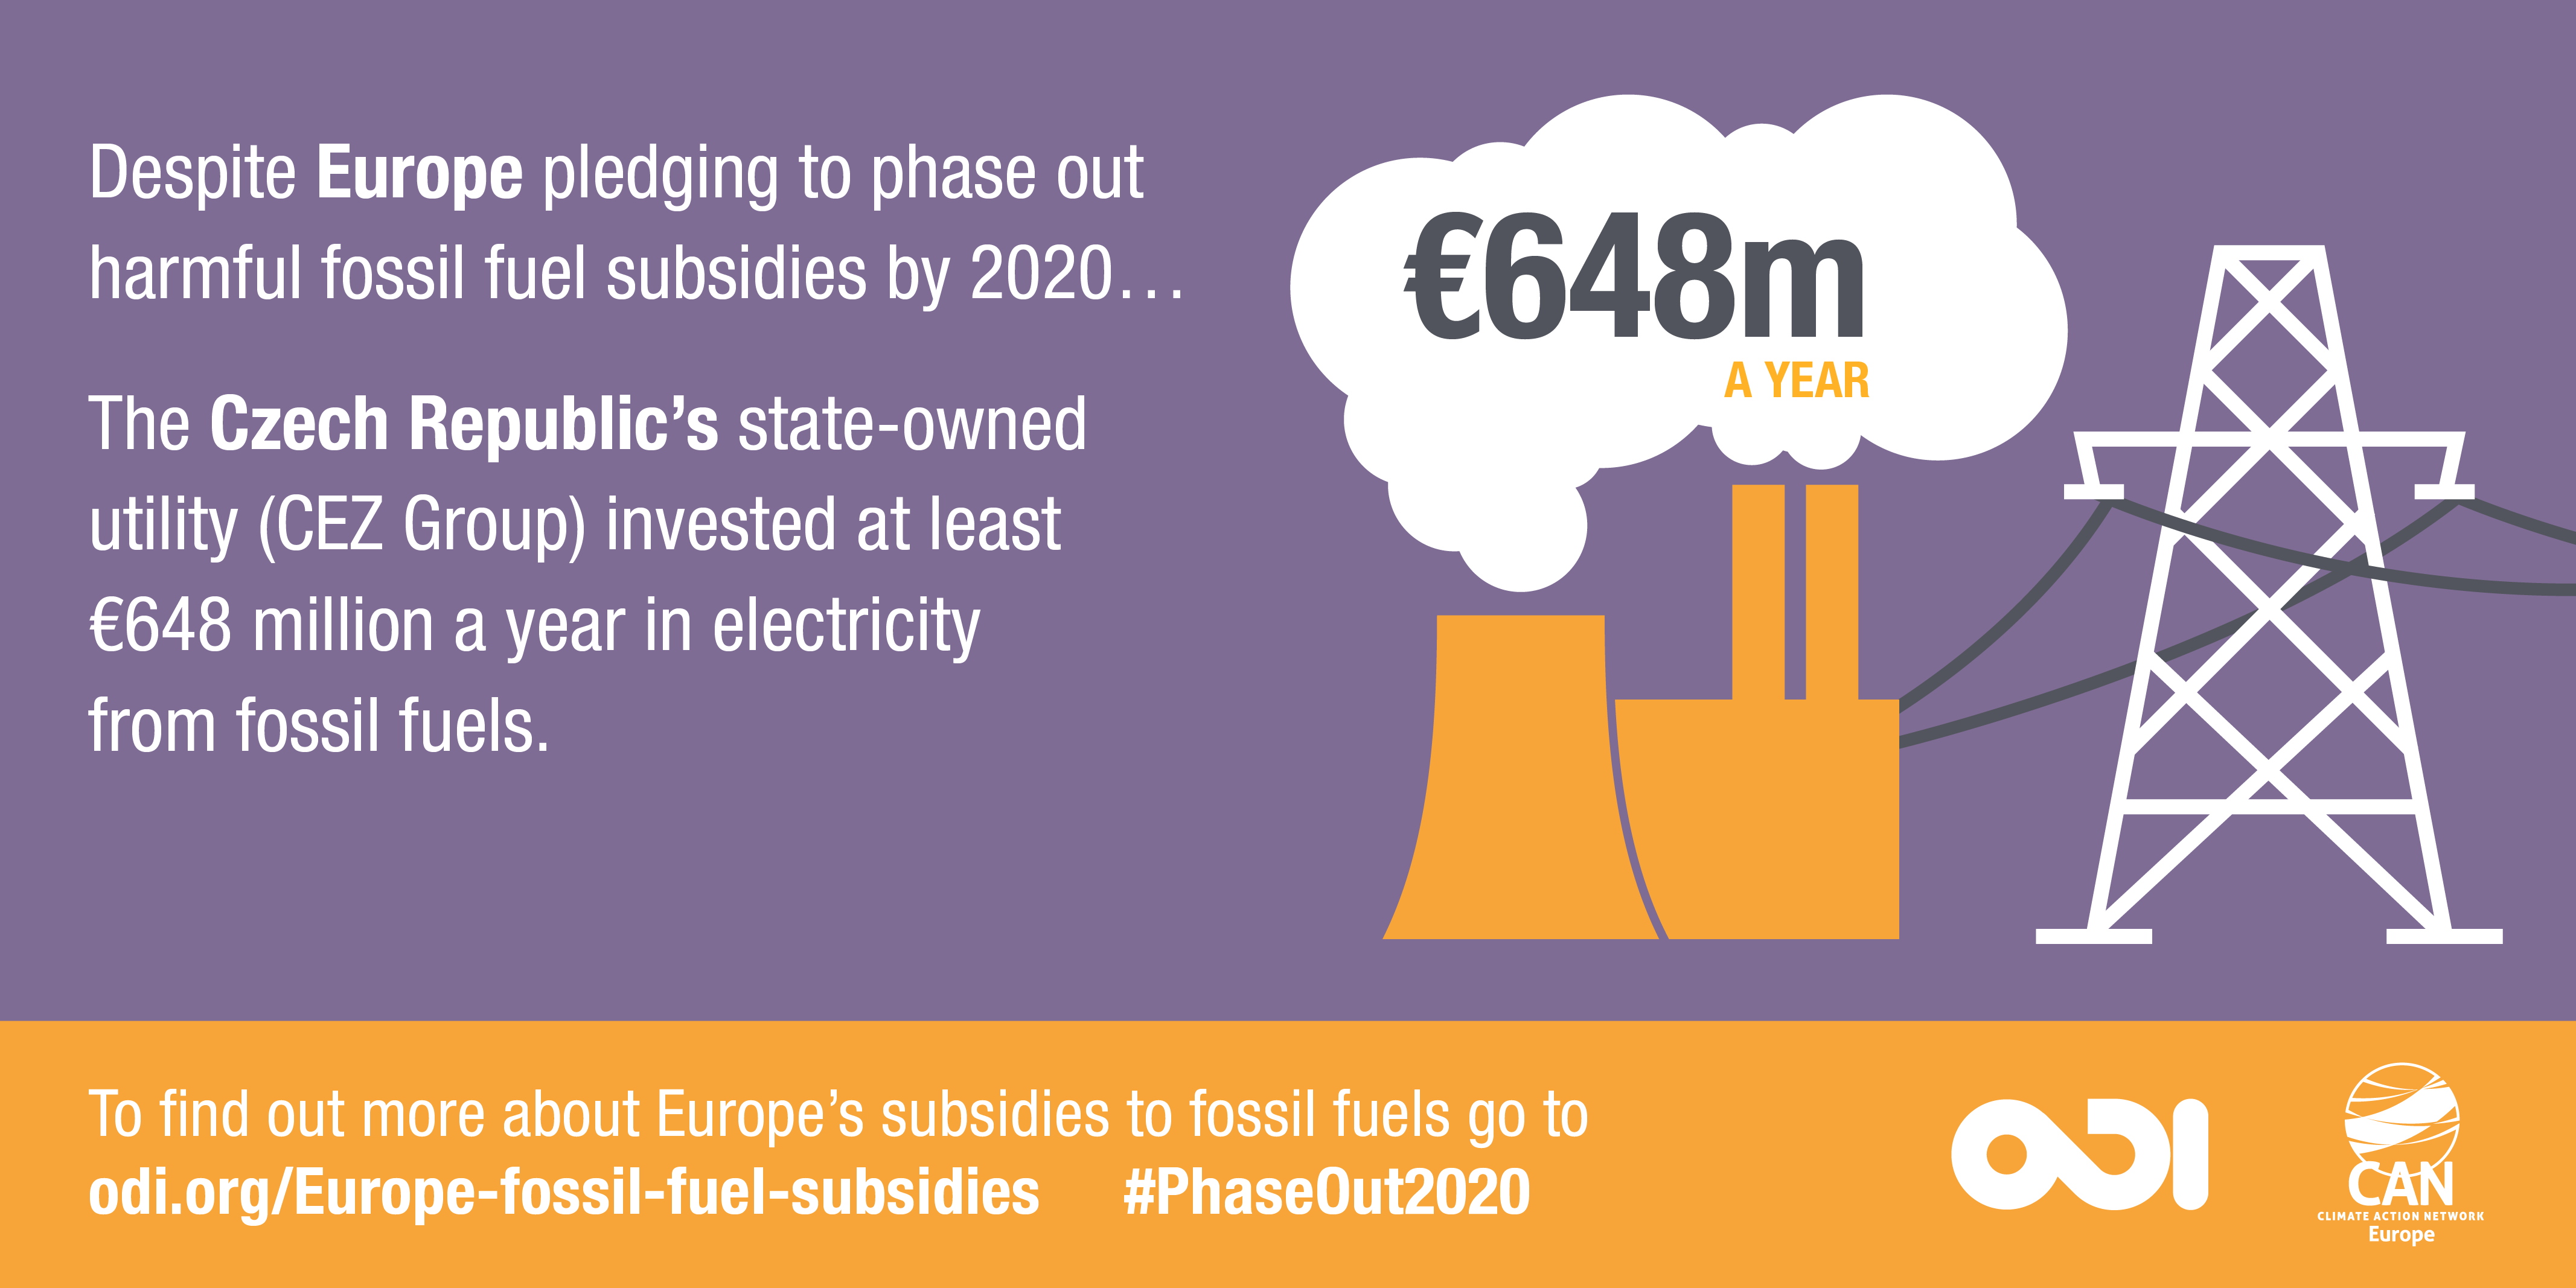 Infographic: The Czech Republic's state-owned utility (CEZ Group) invested at least €648 million a year in electricity from fossil fuels.